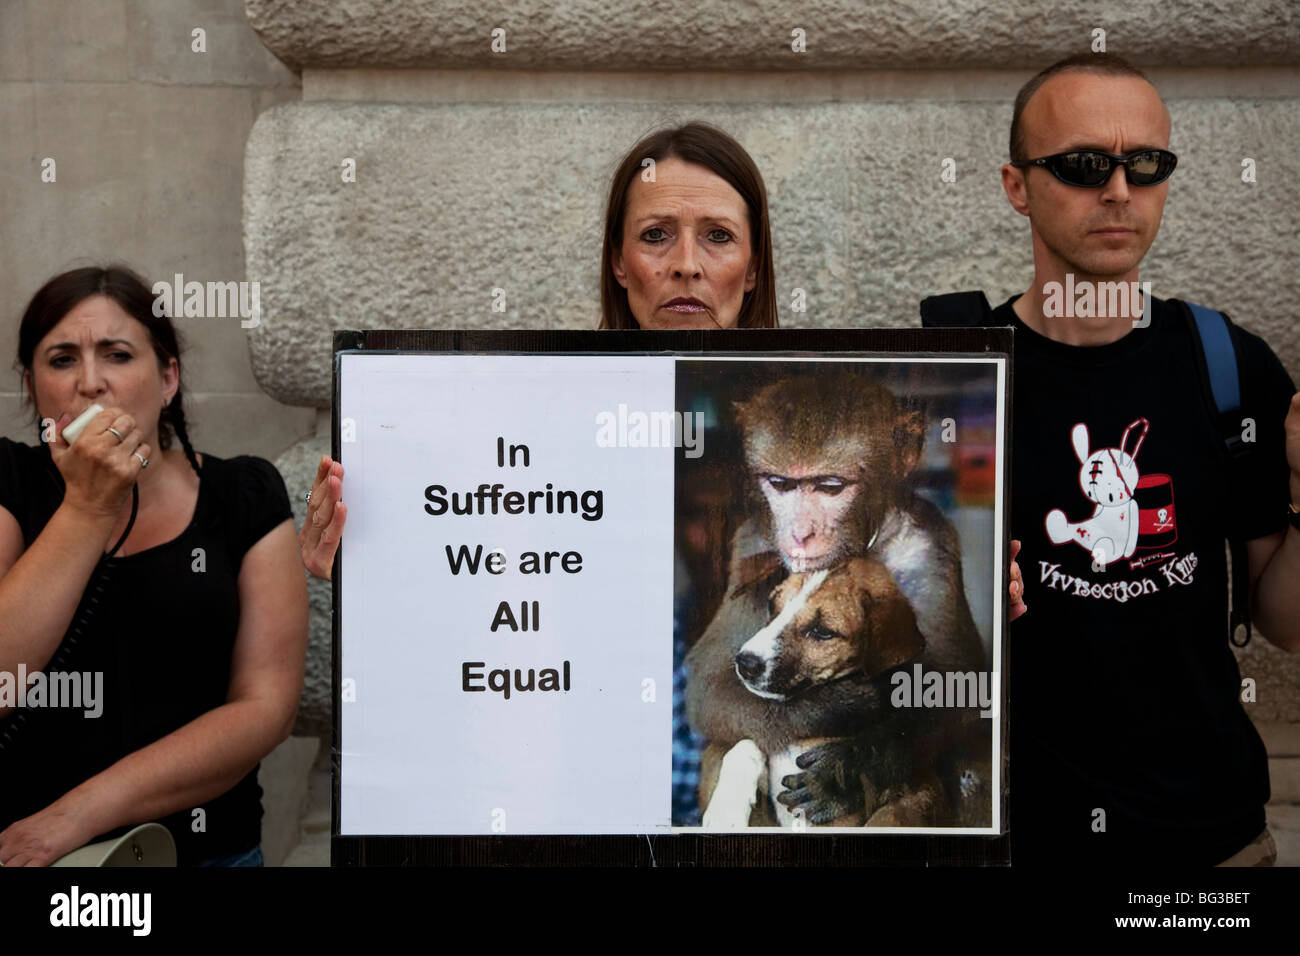 Animal Welfare protesters demonstrate against animal testing, central London. - Stock Image